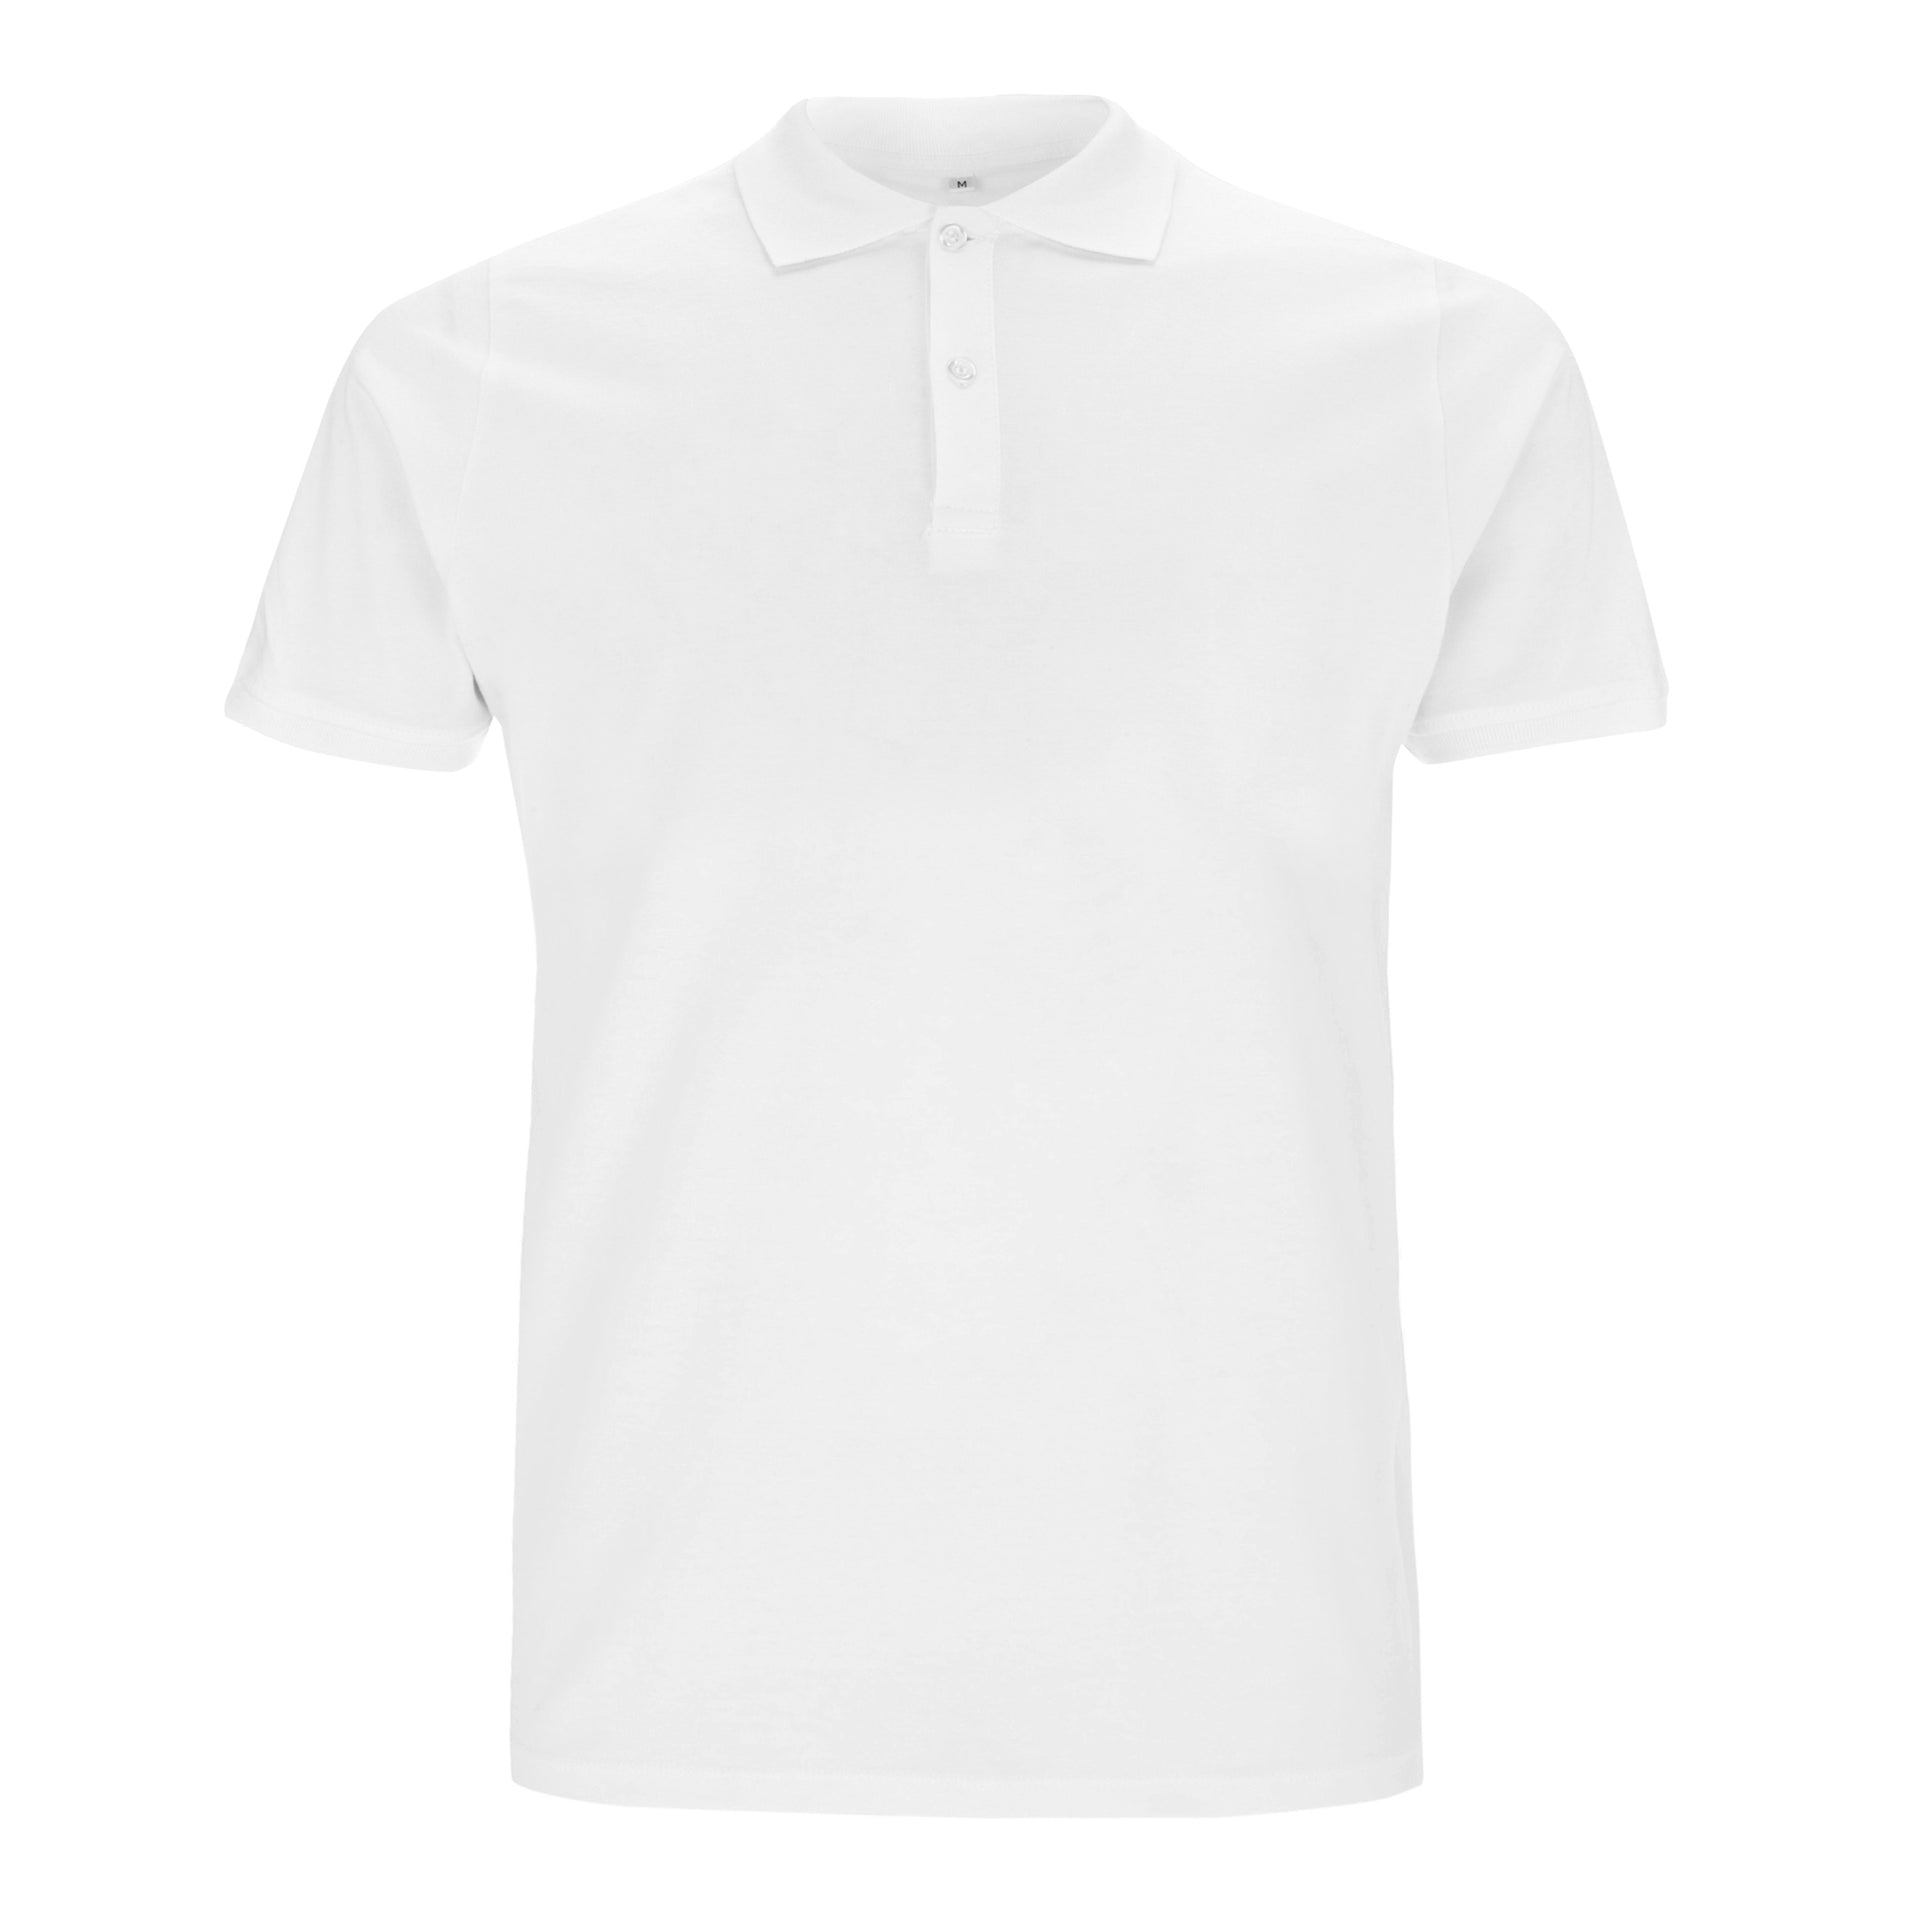 Polo Shirt - Black & White